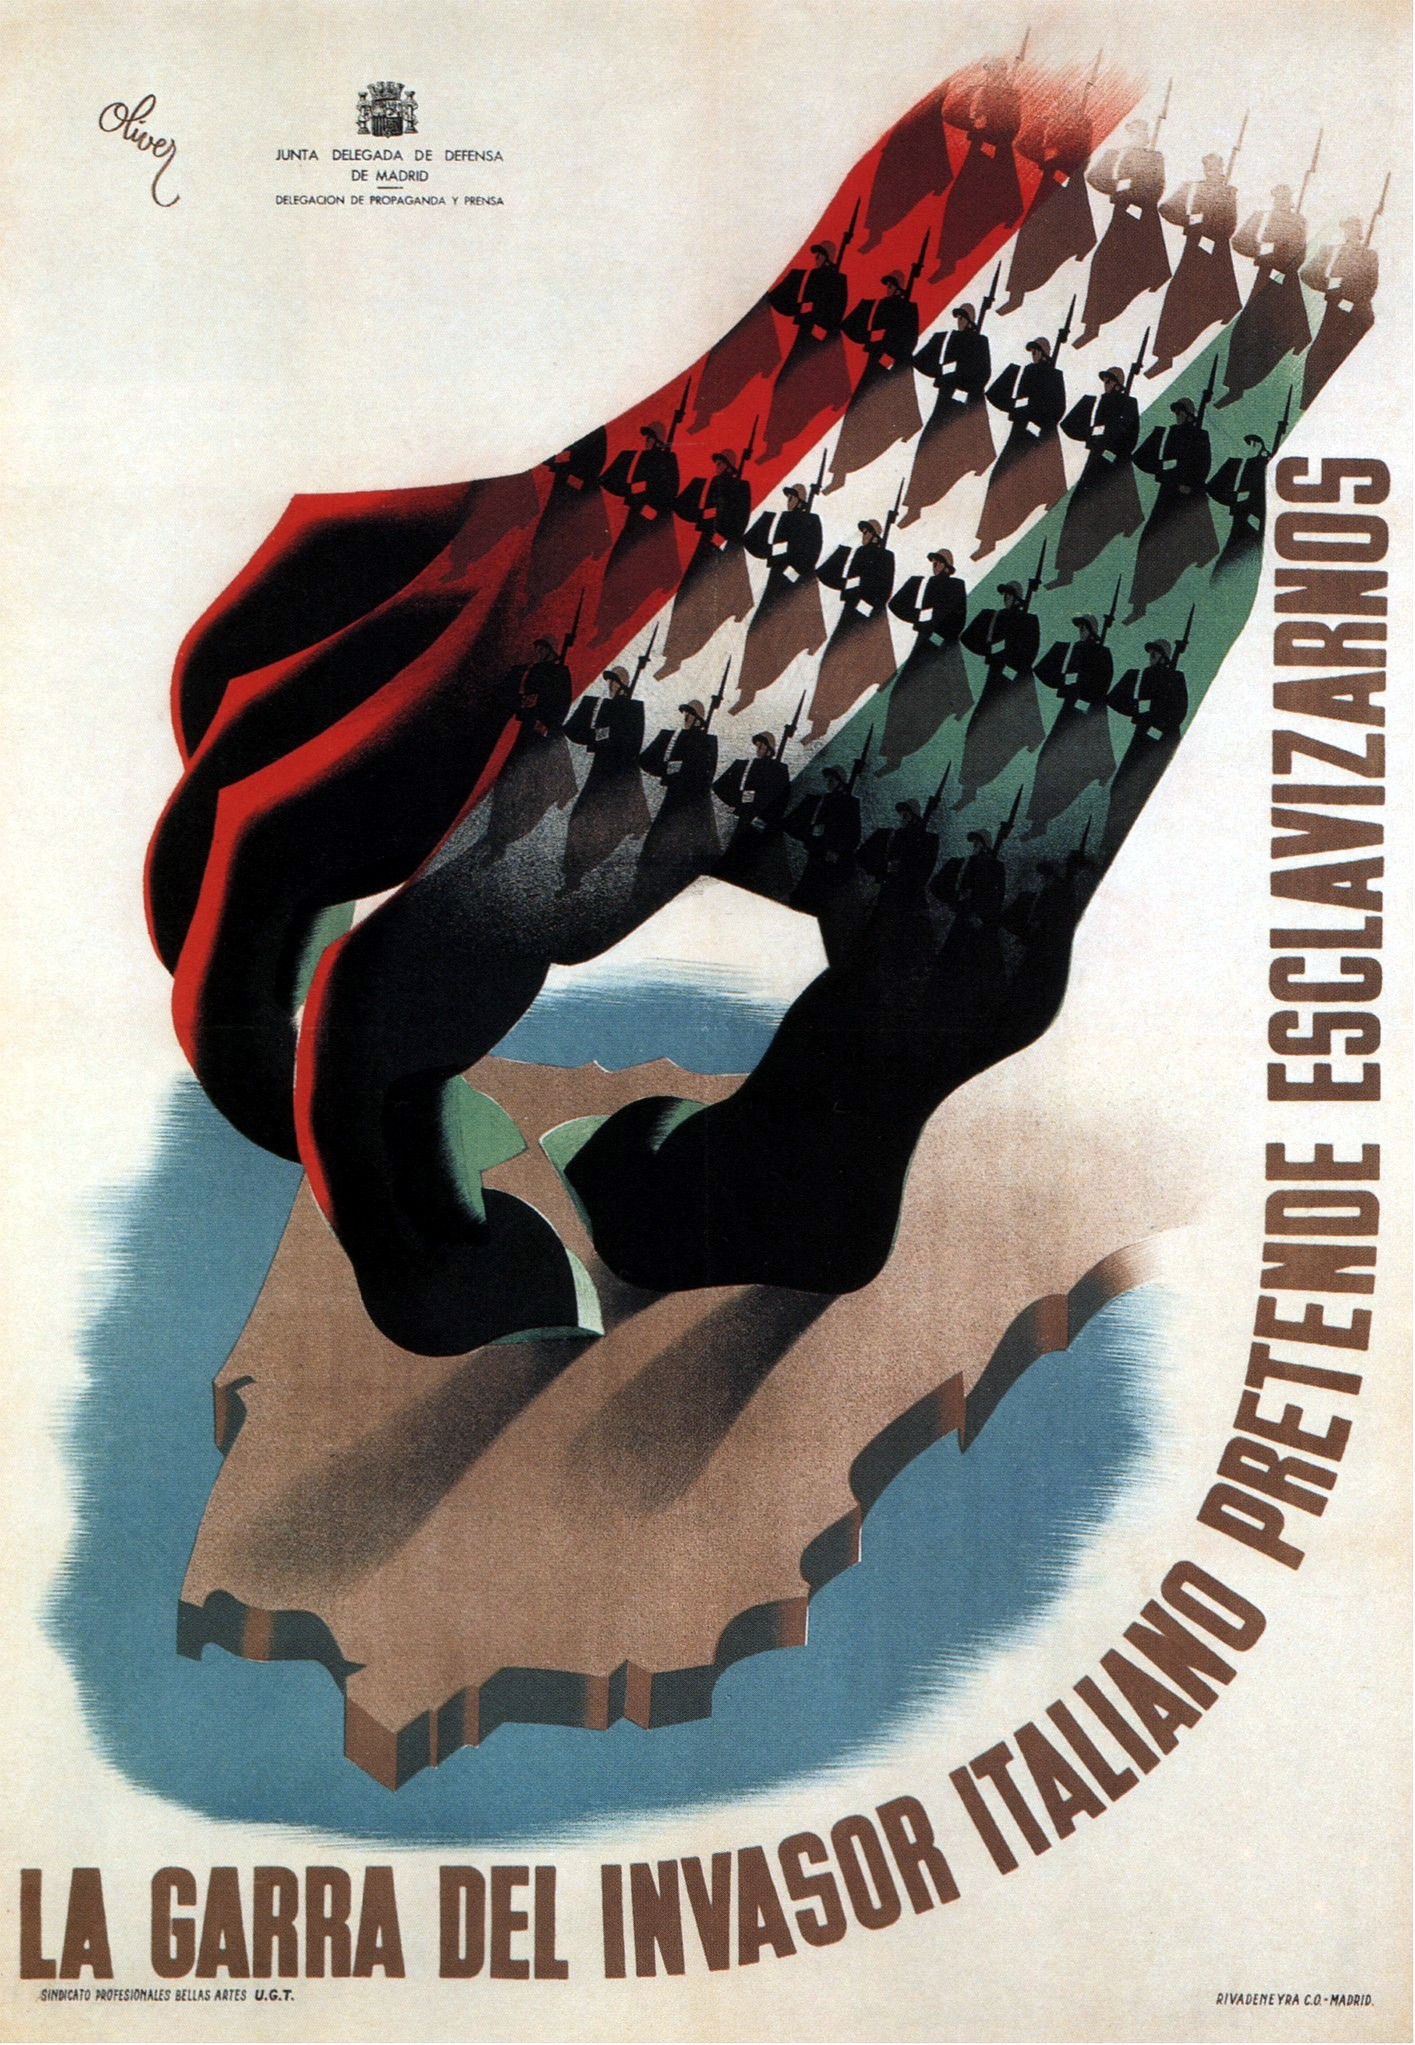 Poster from the Spanish Revolution